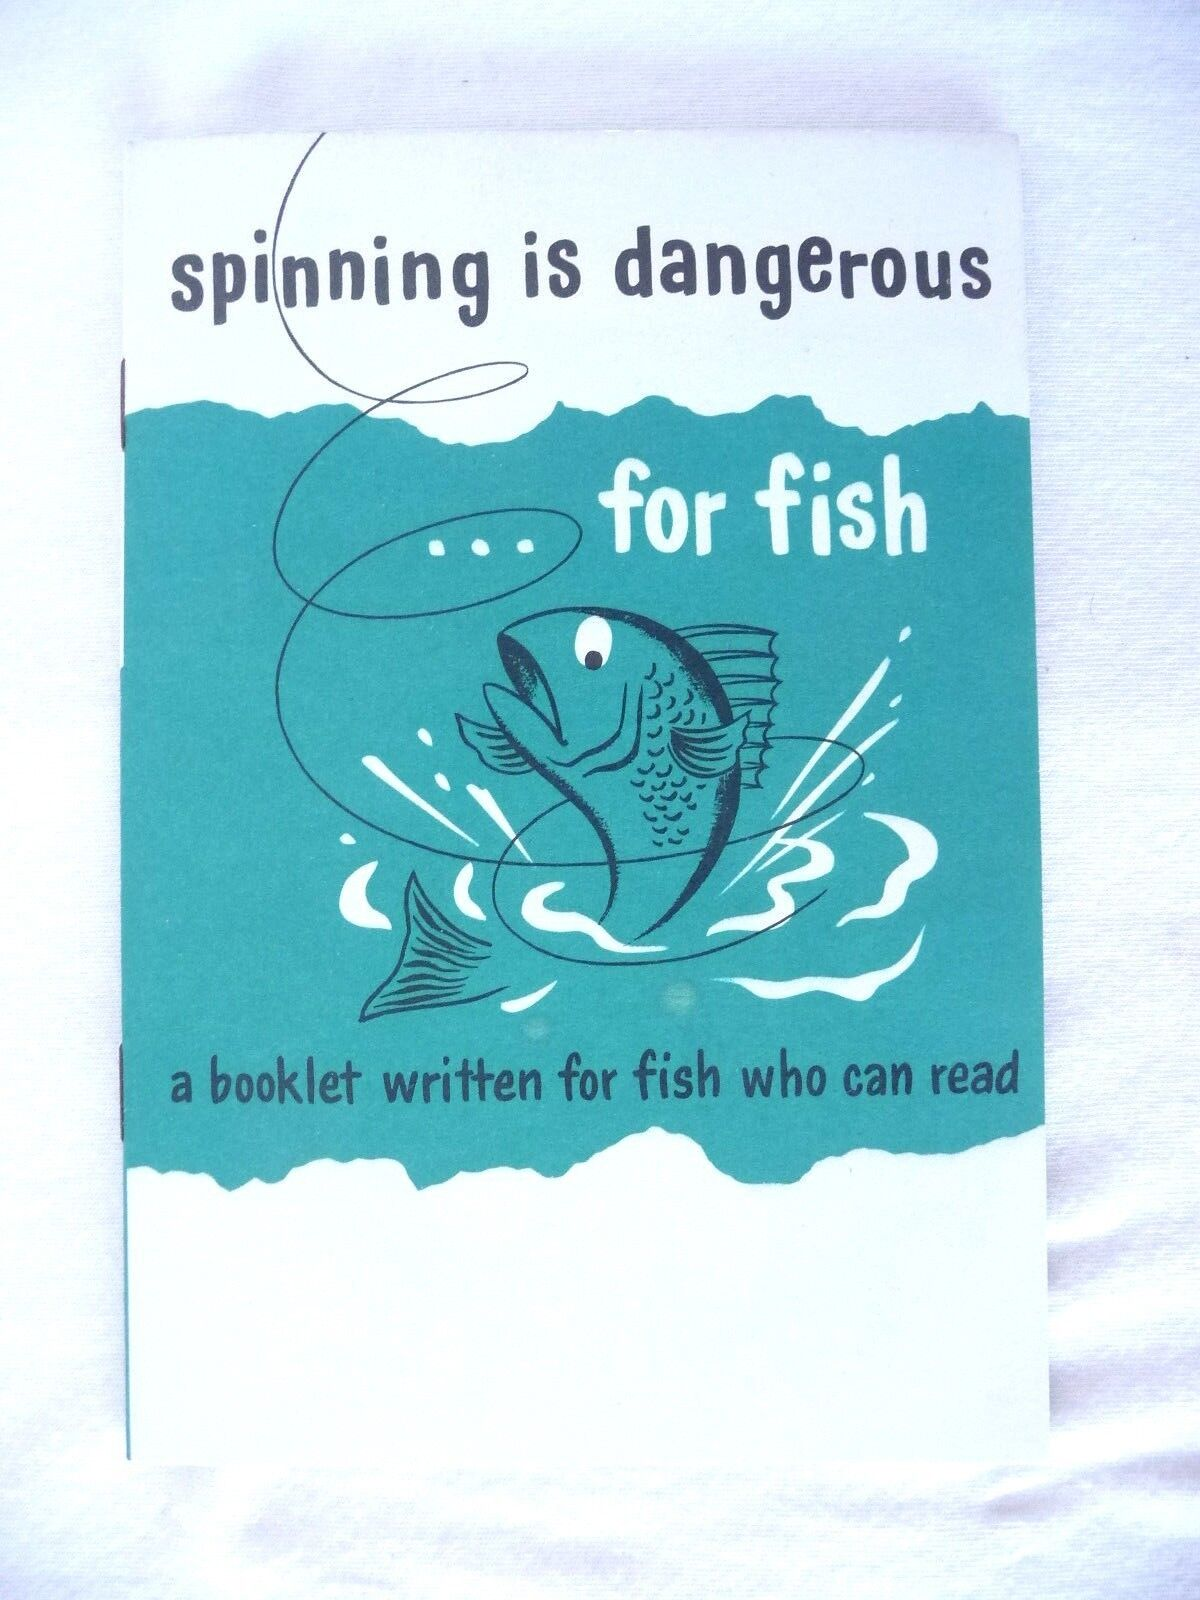 RARE OCEAN CITY MONTAGUE ROD & REEL SPINNING IS DANGEROUS FOR FISH BOOKLET USA